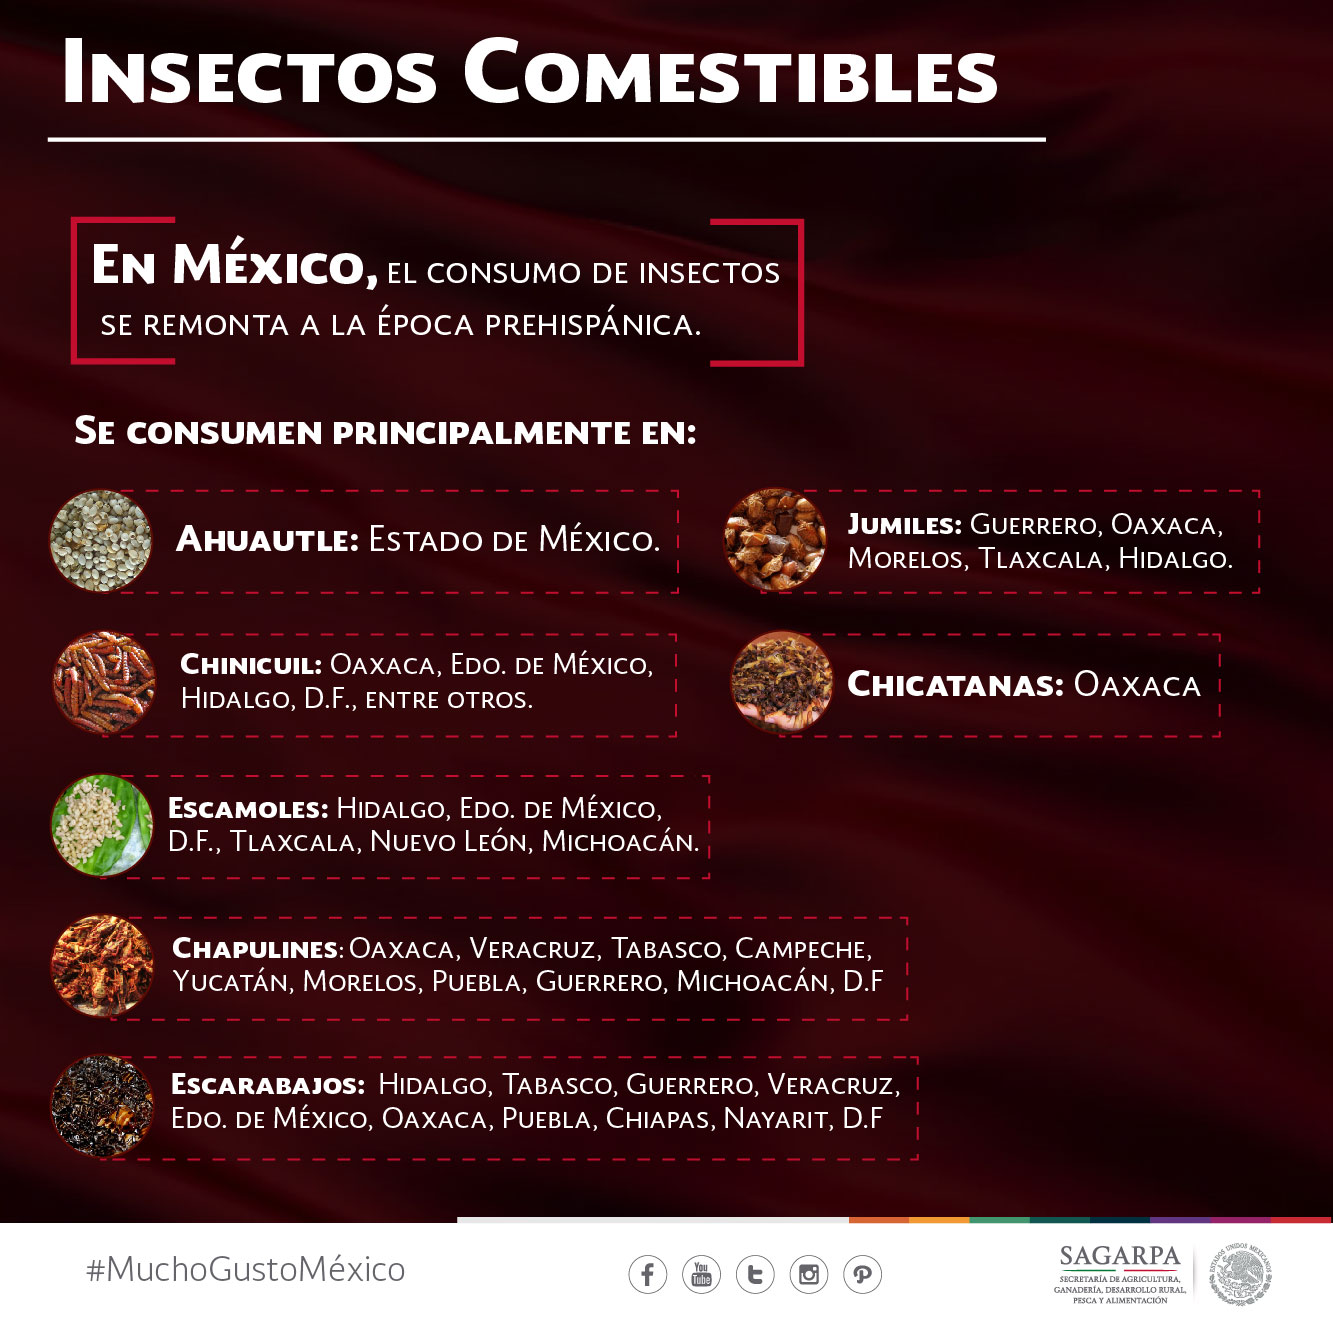 Insectos comestibles 01